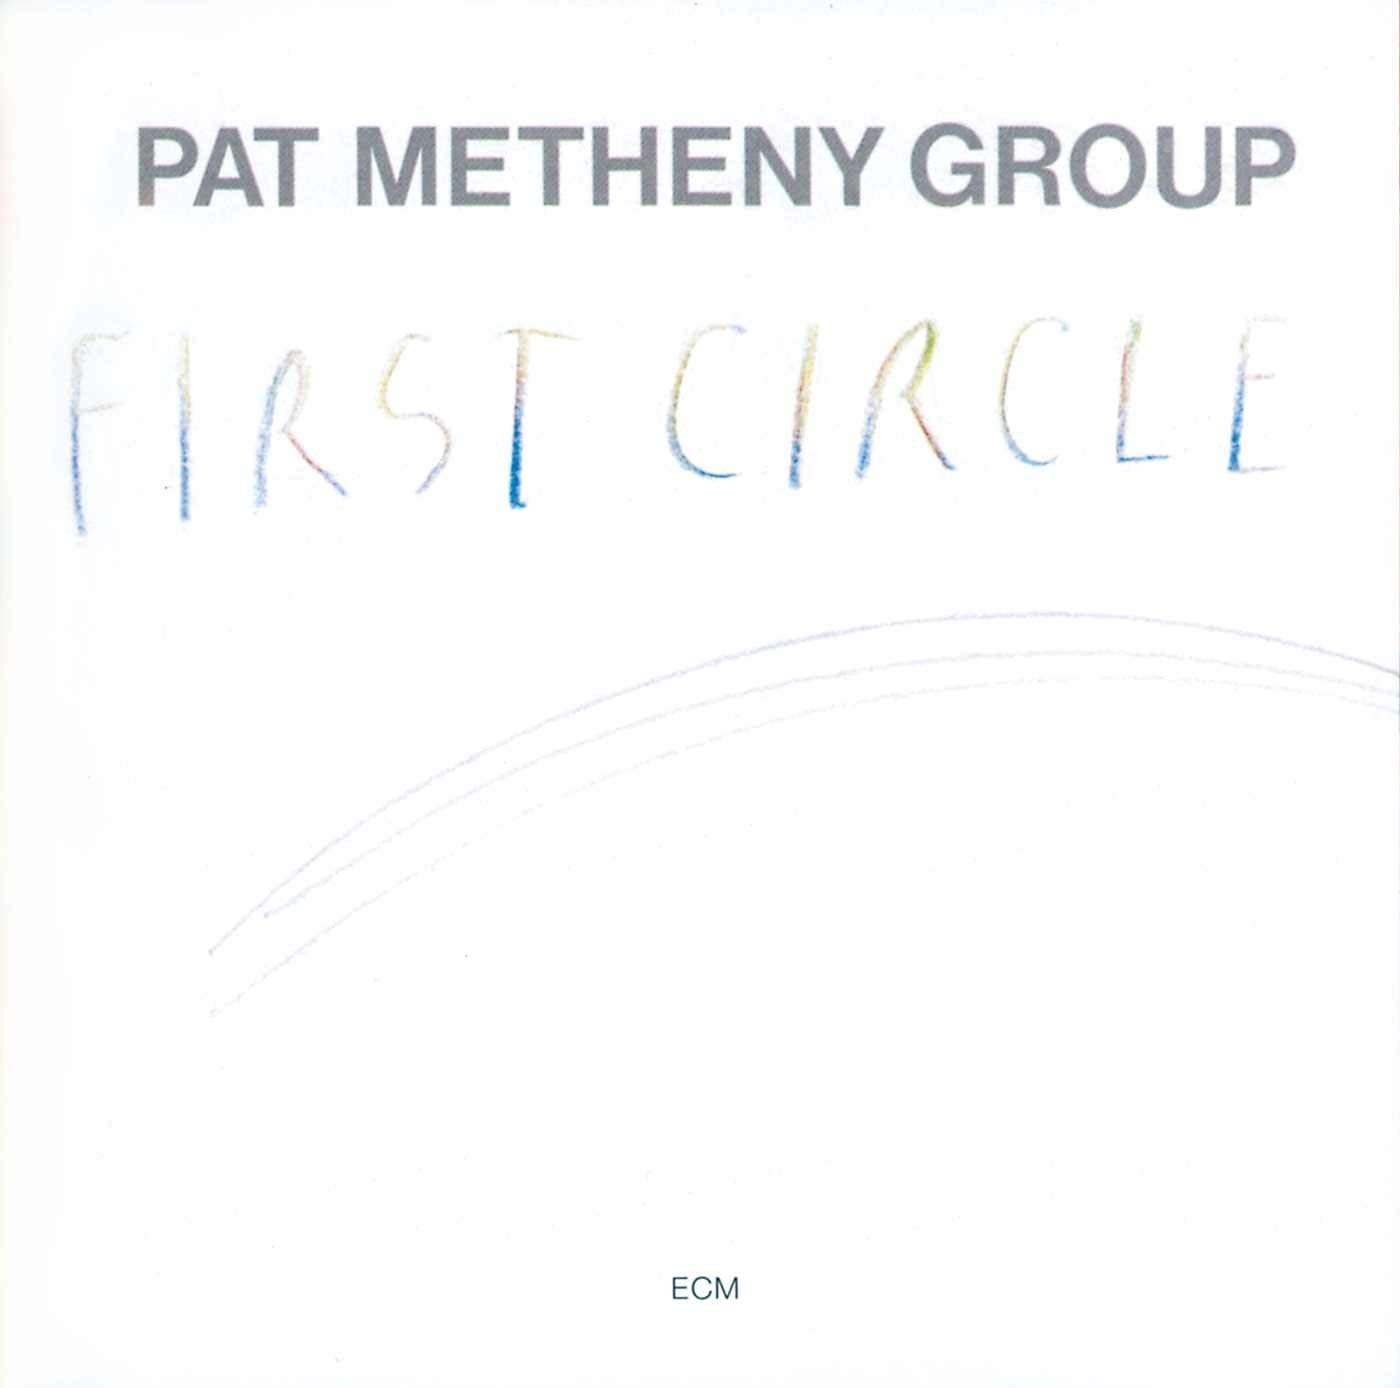 The Pat Metheny Group Pat Metheny Group. First Circle pat the cat pat the bunny